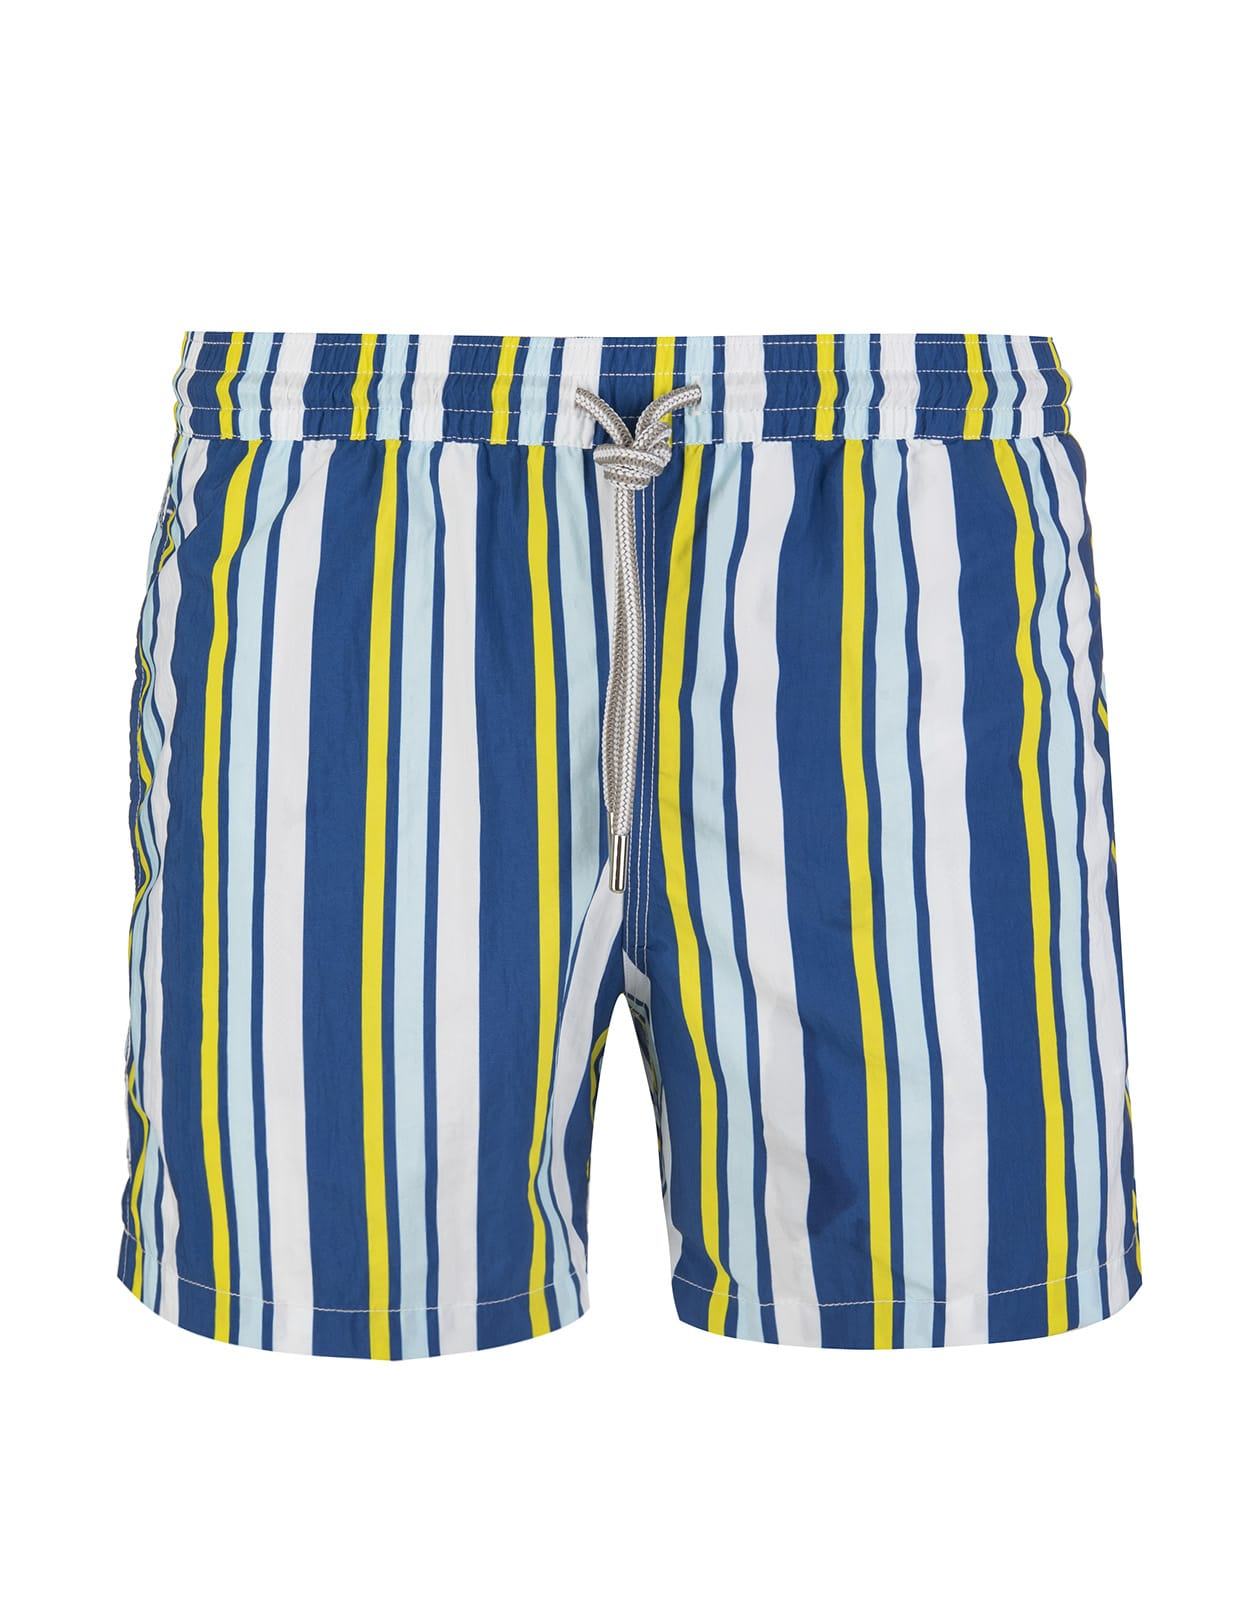 White Swimsuit With Yellow And Blue Stripes